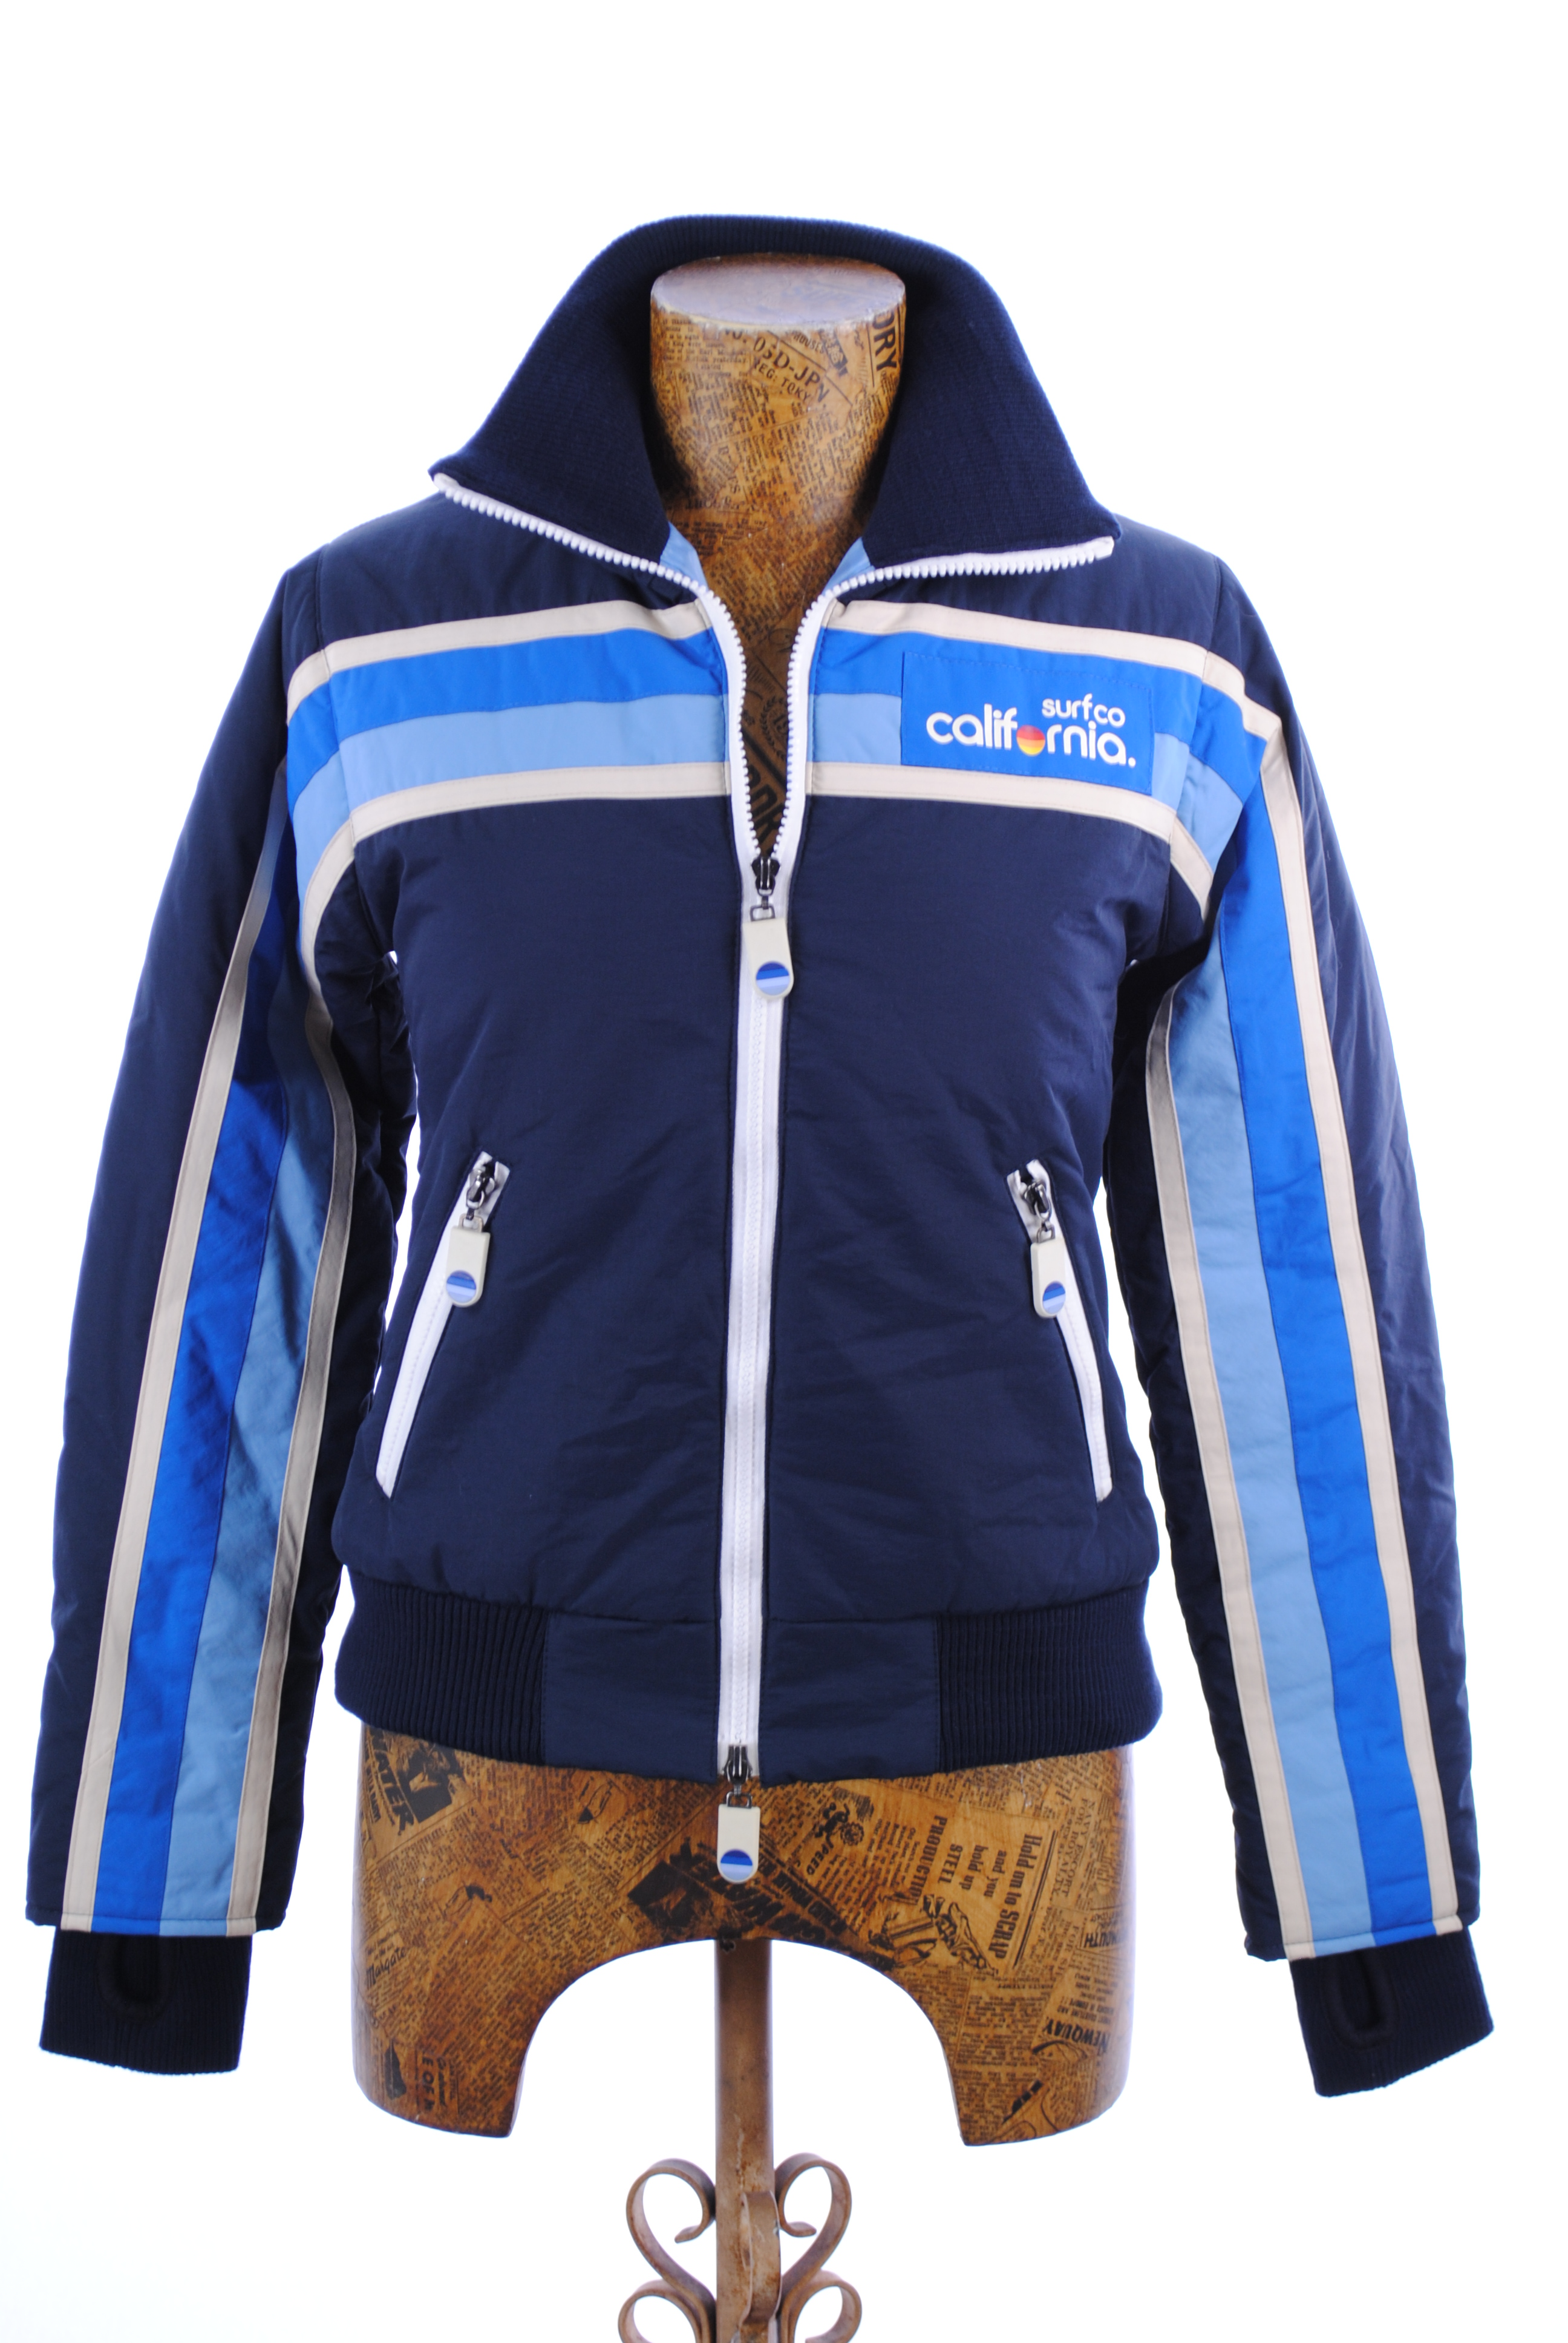 New Womens Superdry Unique Sample Cali Surf Retro Look Jacket Size Extra Small